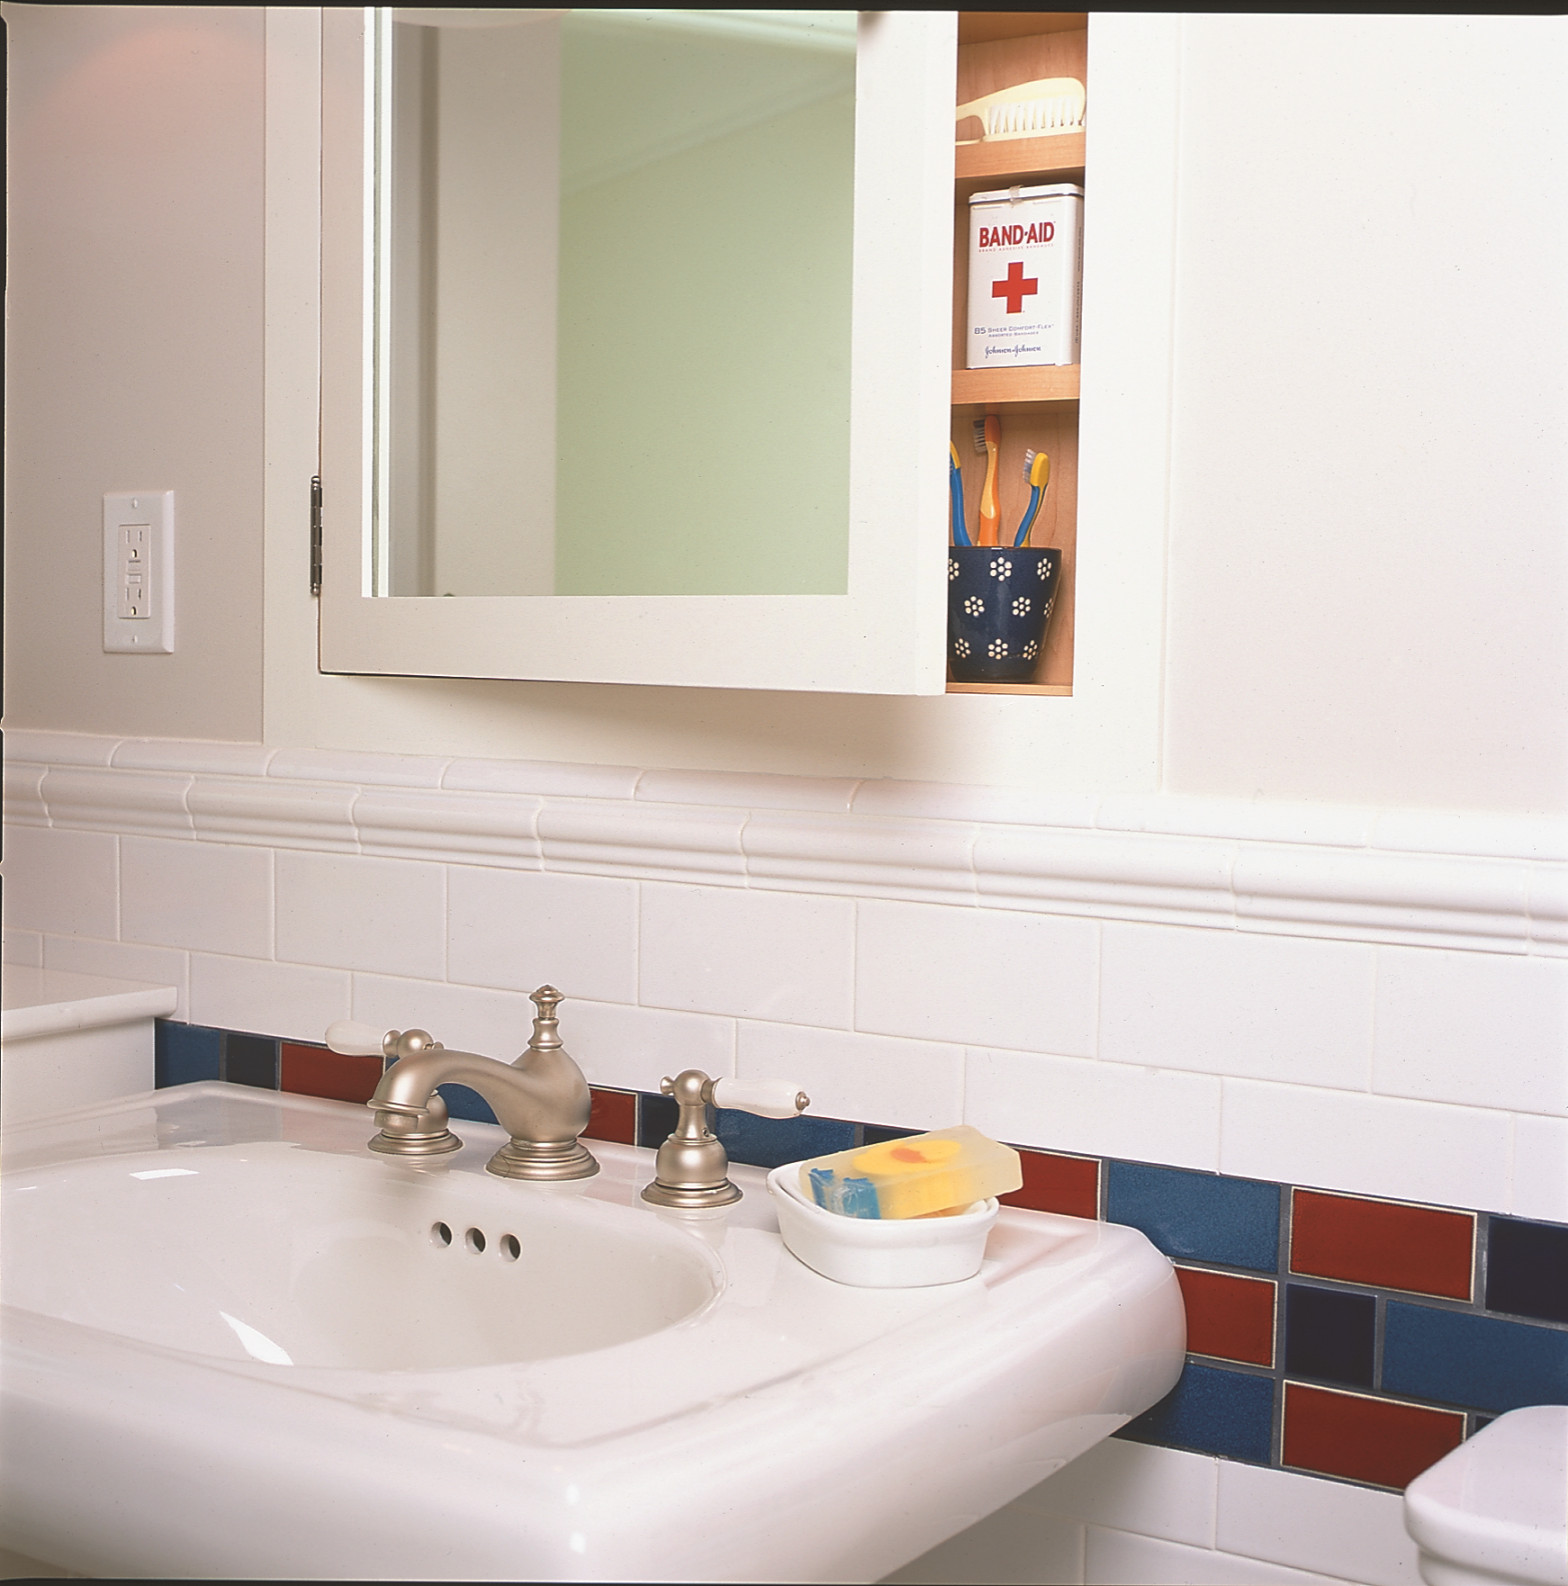 Bathroom with red blue and white tile and pedestal sink